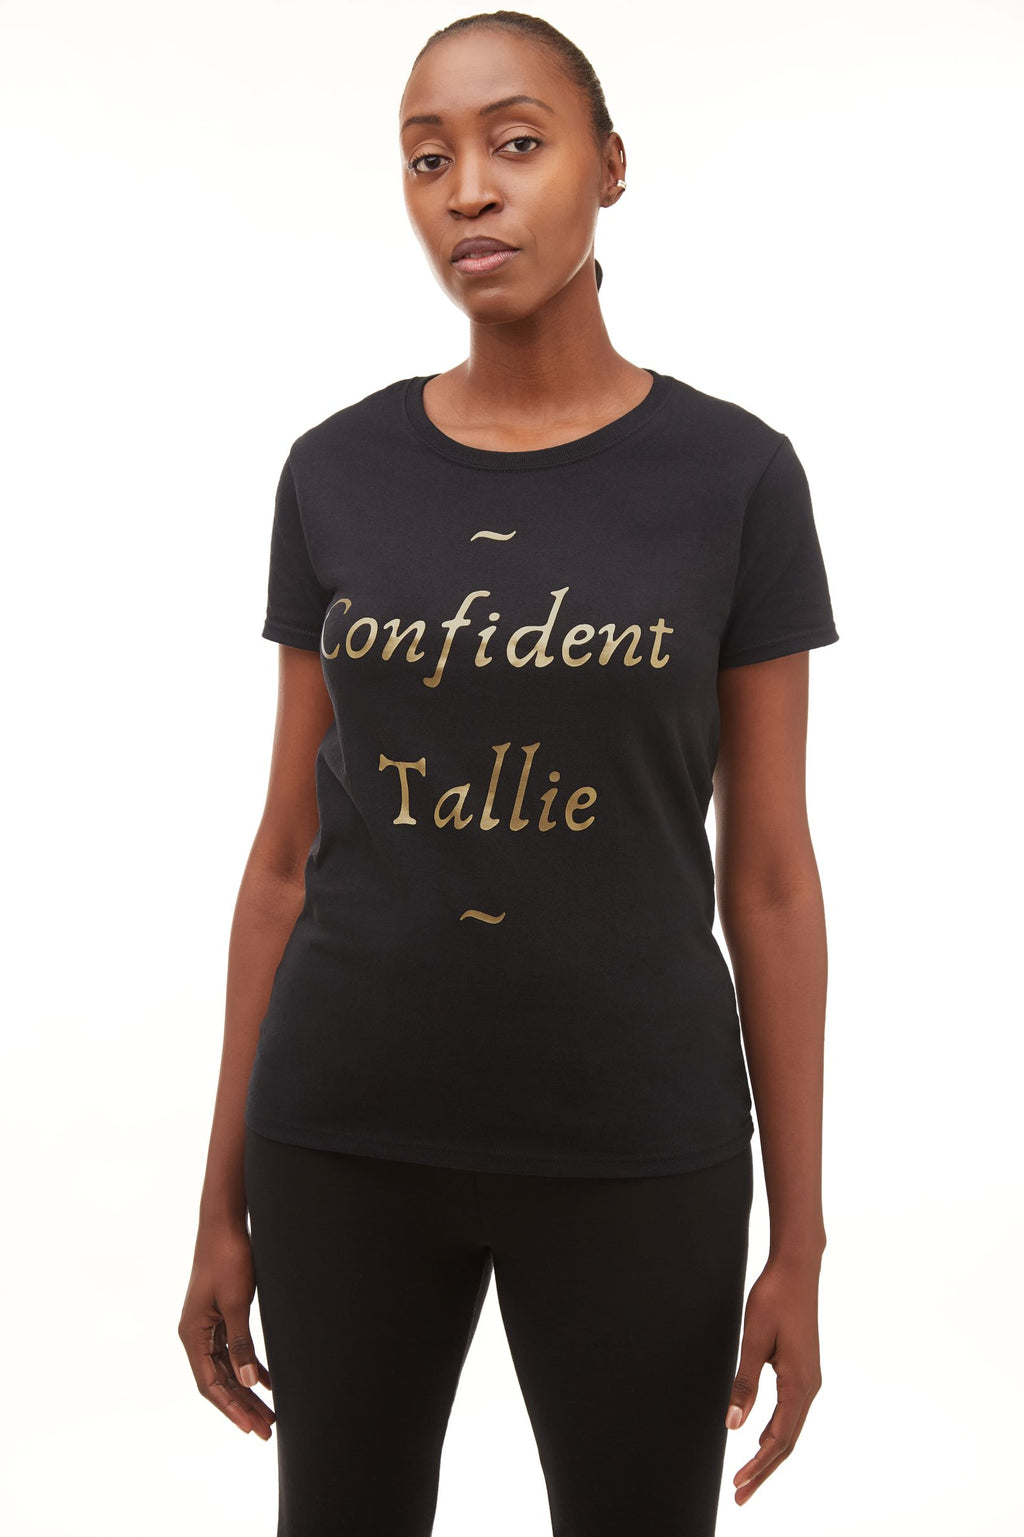 T-shirt - Confident Tallie